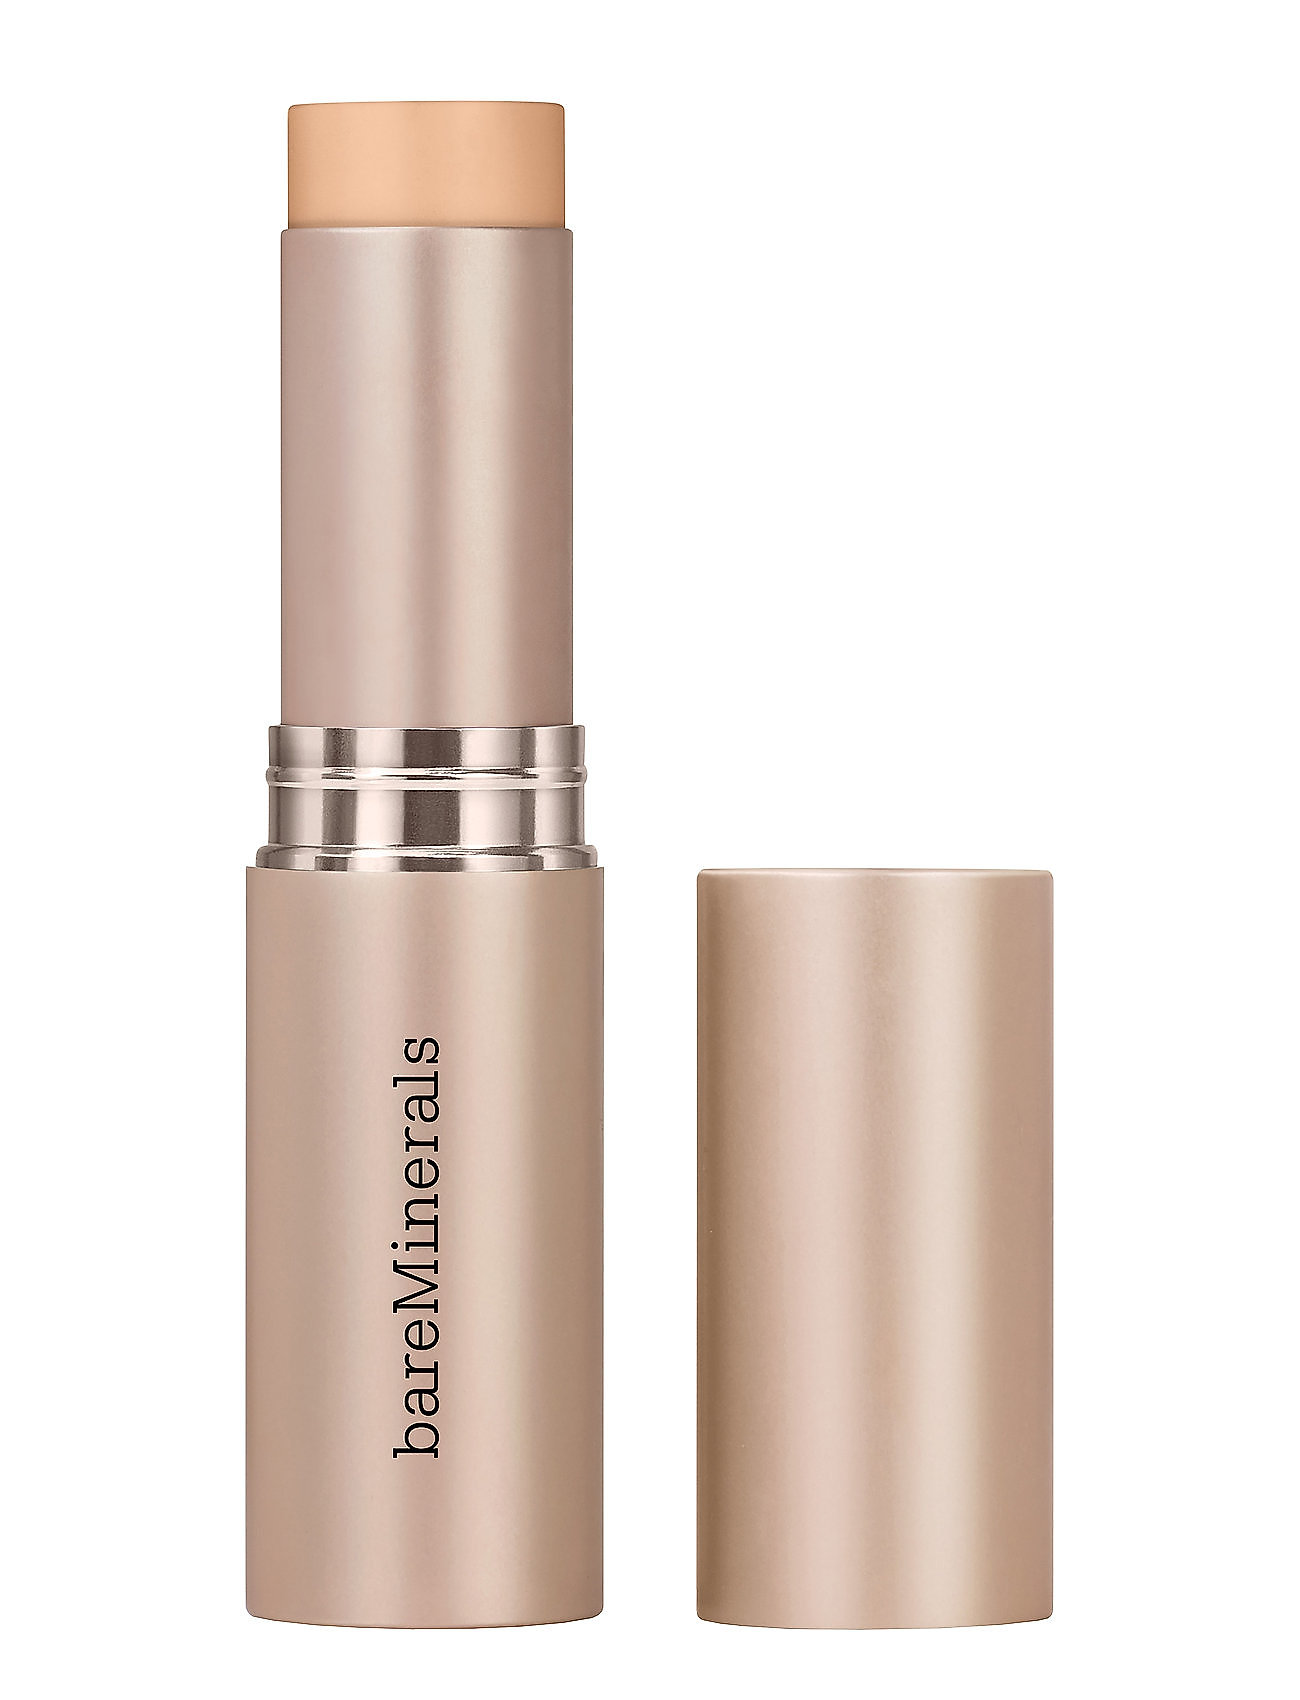 Image of Complexion Rescue Hydrating Foundation Stick Spf 25 Foundation Makeup BareMinerals (3307690669)